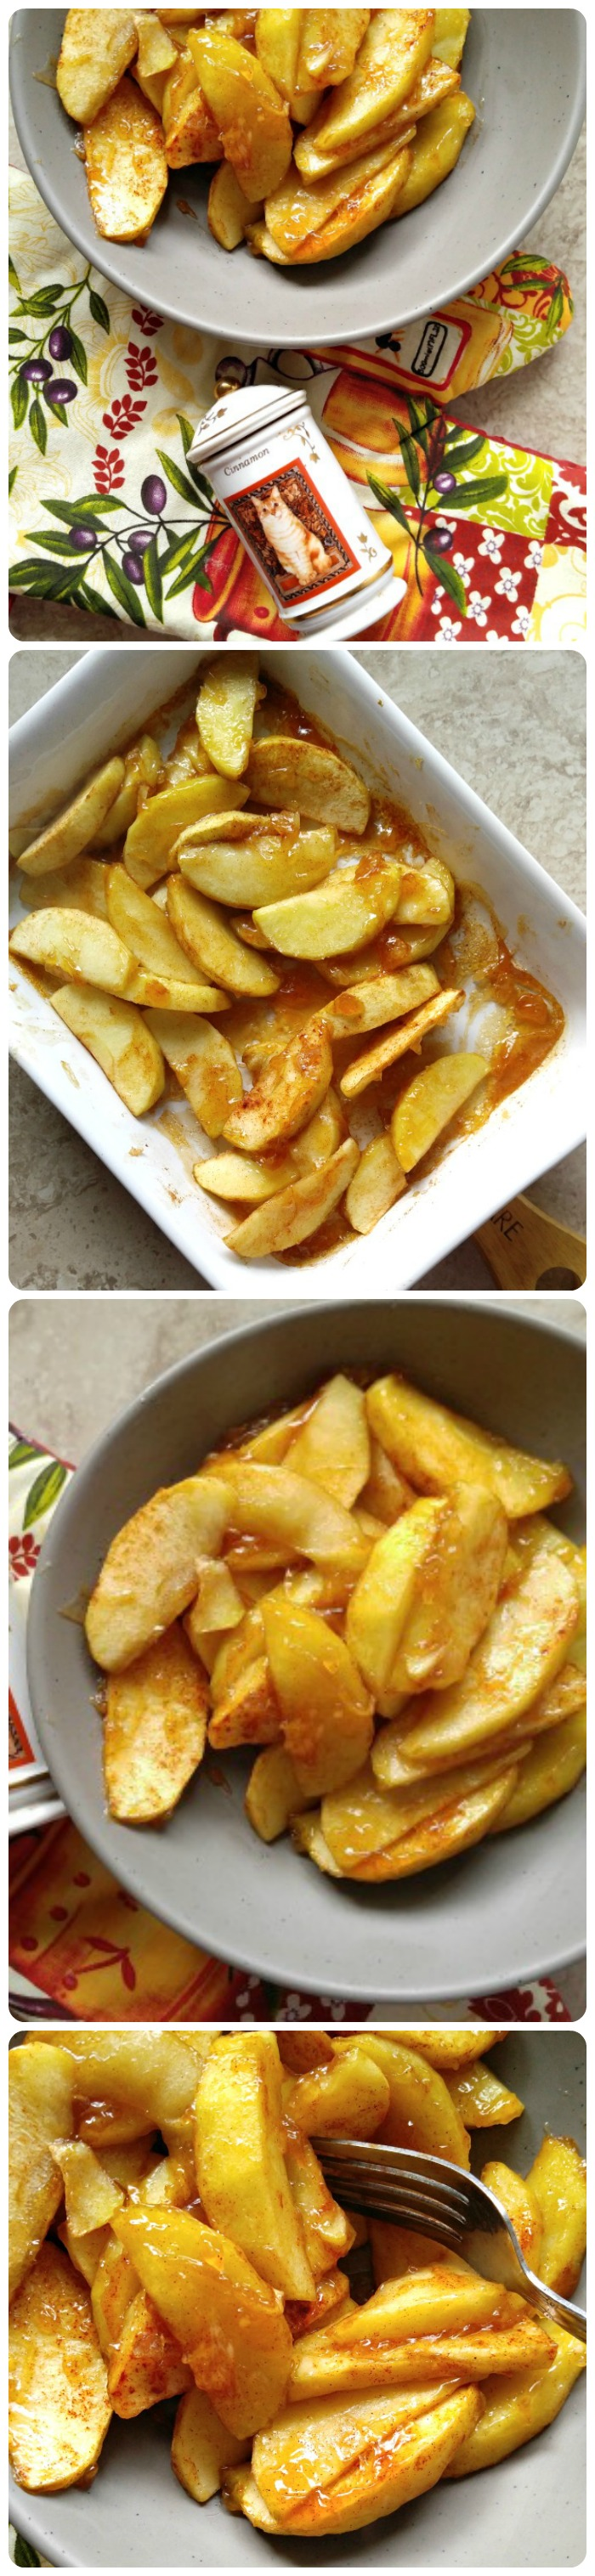 These cinnamon baked apple slices are the perfect side dish to go with pork chops. They are sweet but not overly so and perfectly tender.